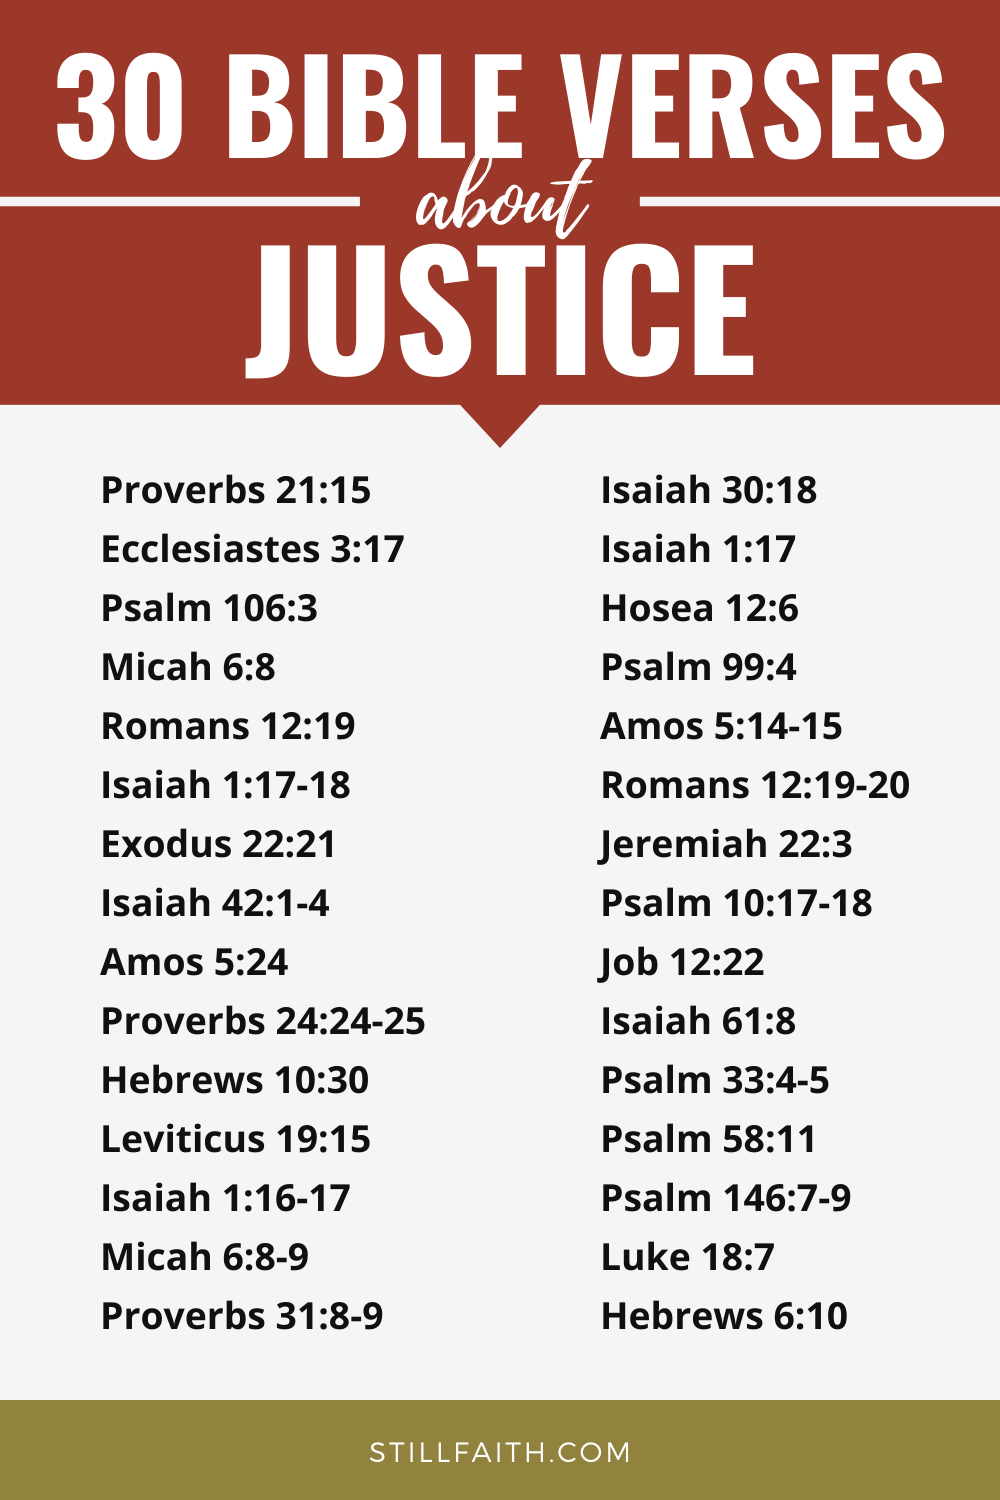 152 Bible Verses about Justice